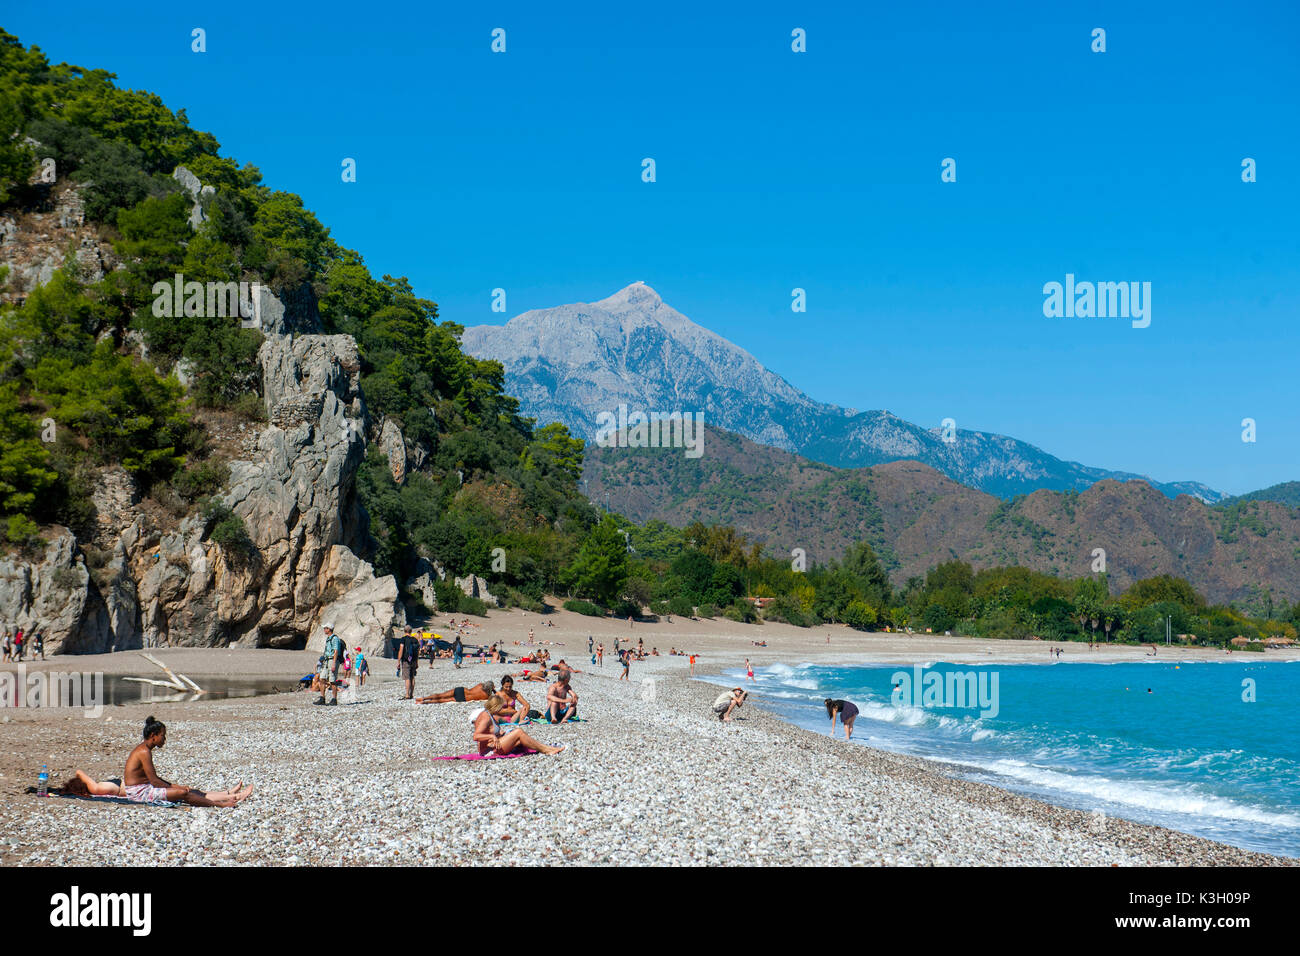 Turkey, Antalya, Cirali Köyü, beach of Olympos/Cirali, at the background in ancient times Mount Olympus called mountain Tahtali dagi - Stock Image